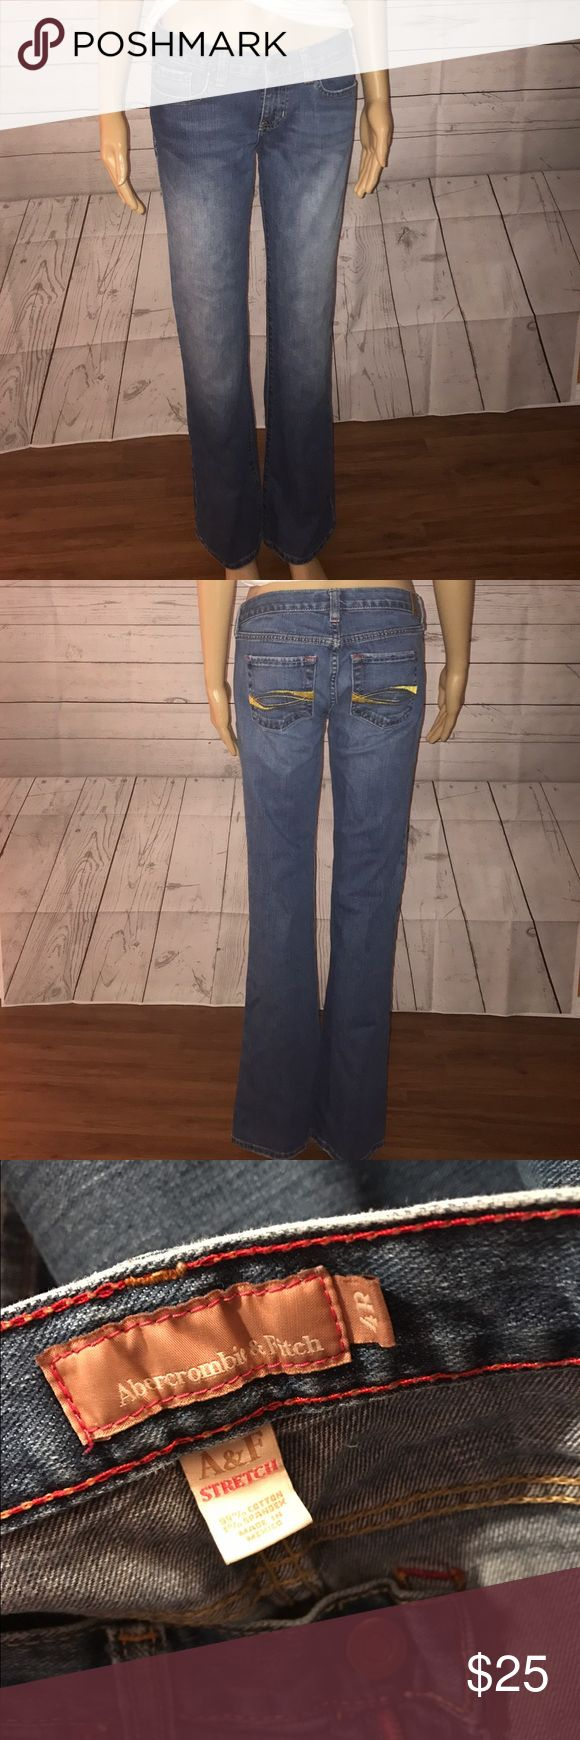 Abercrombie & Fitch Jeans Abercrombie & Fitch stretch Emma boot jeans. Abercrombie & Fitch Jeans Boot Cut